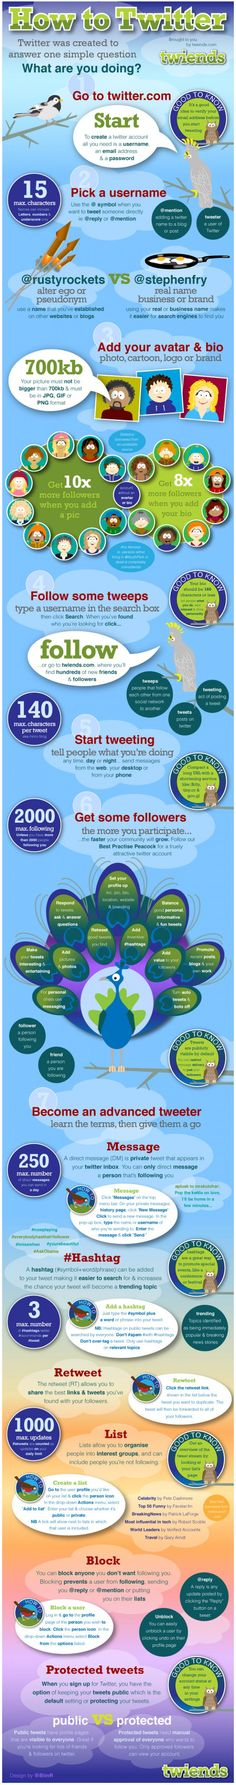 How to Twitter #infographic #socialmedia #marketing